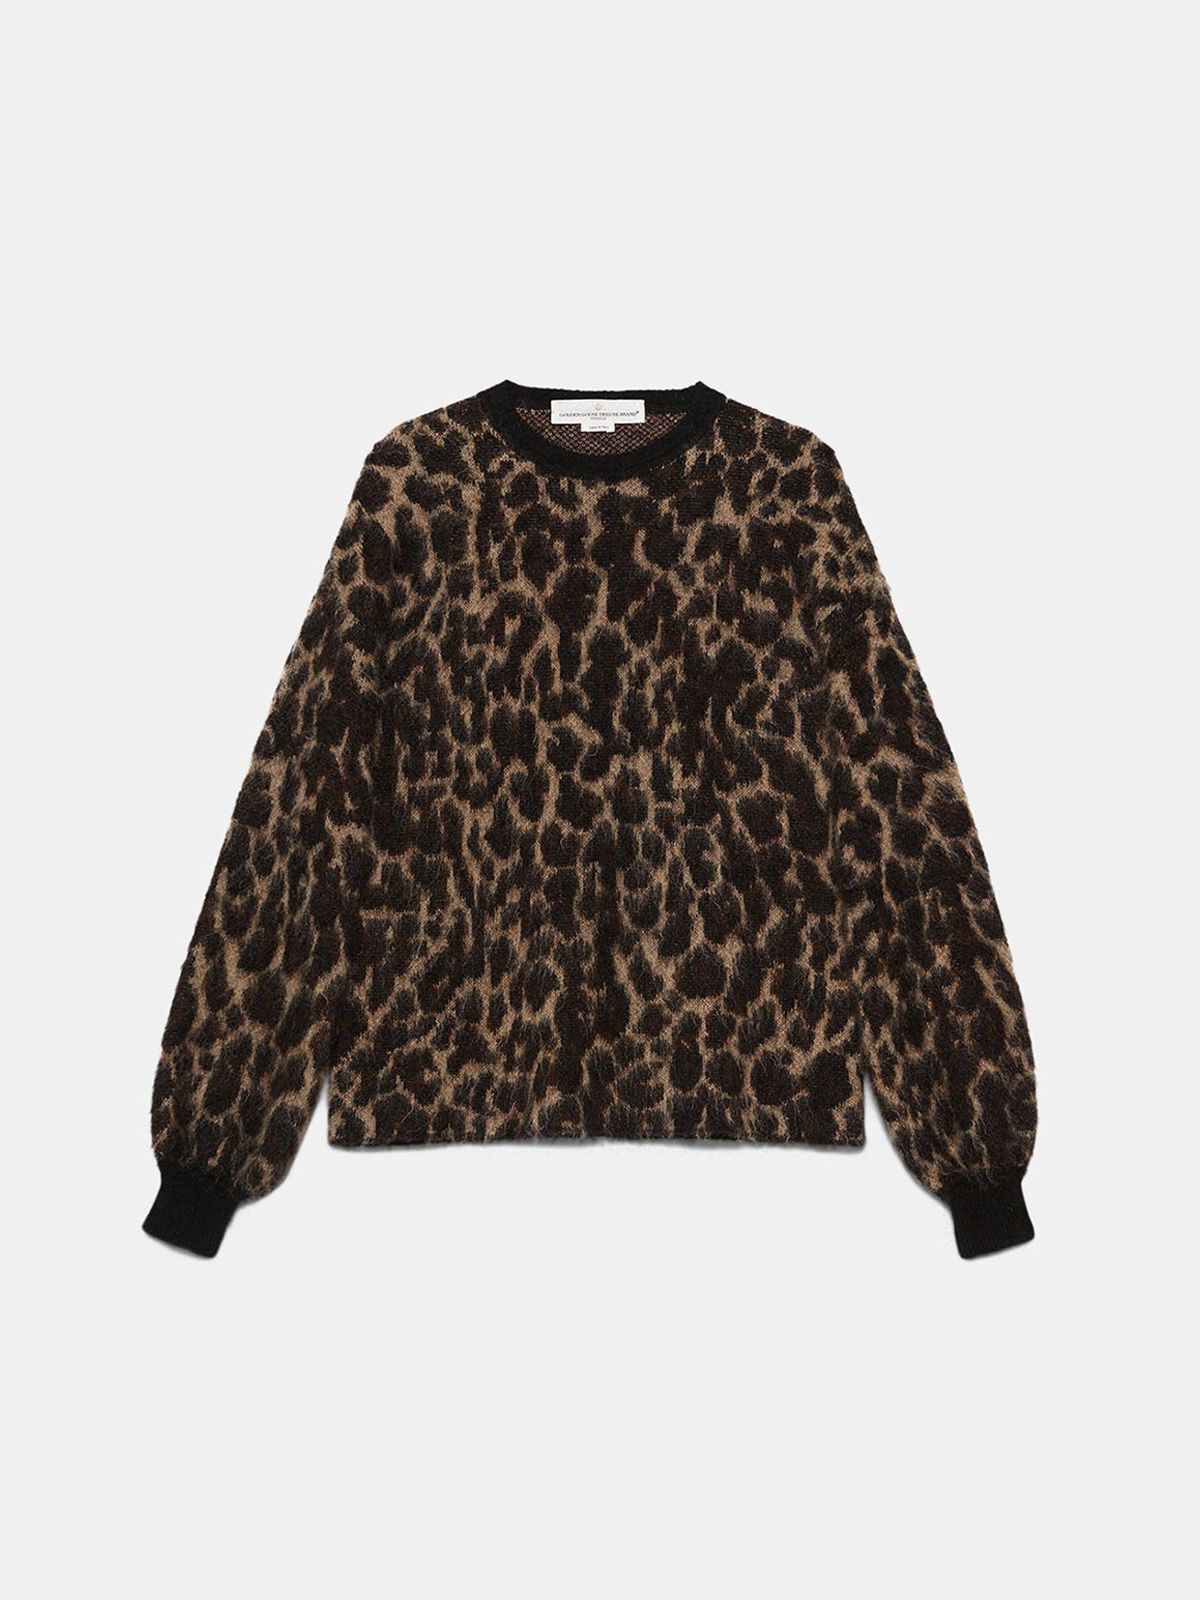 Golden Goose - Kaneshon sweater in wool blend jacquard with leopard pattern in